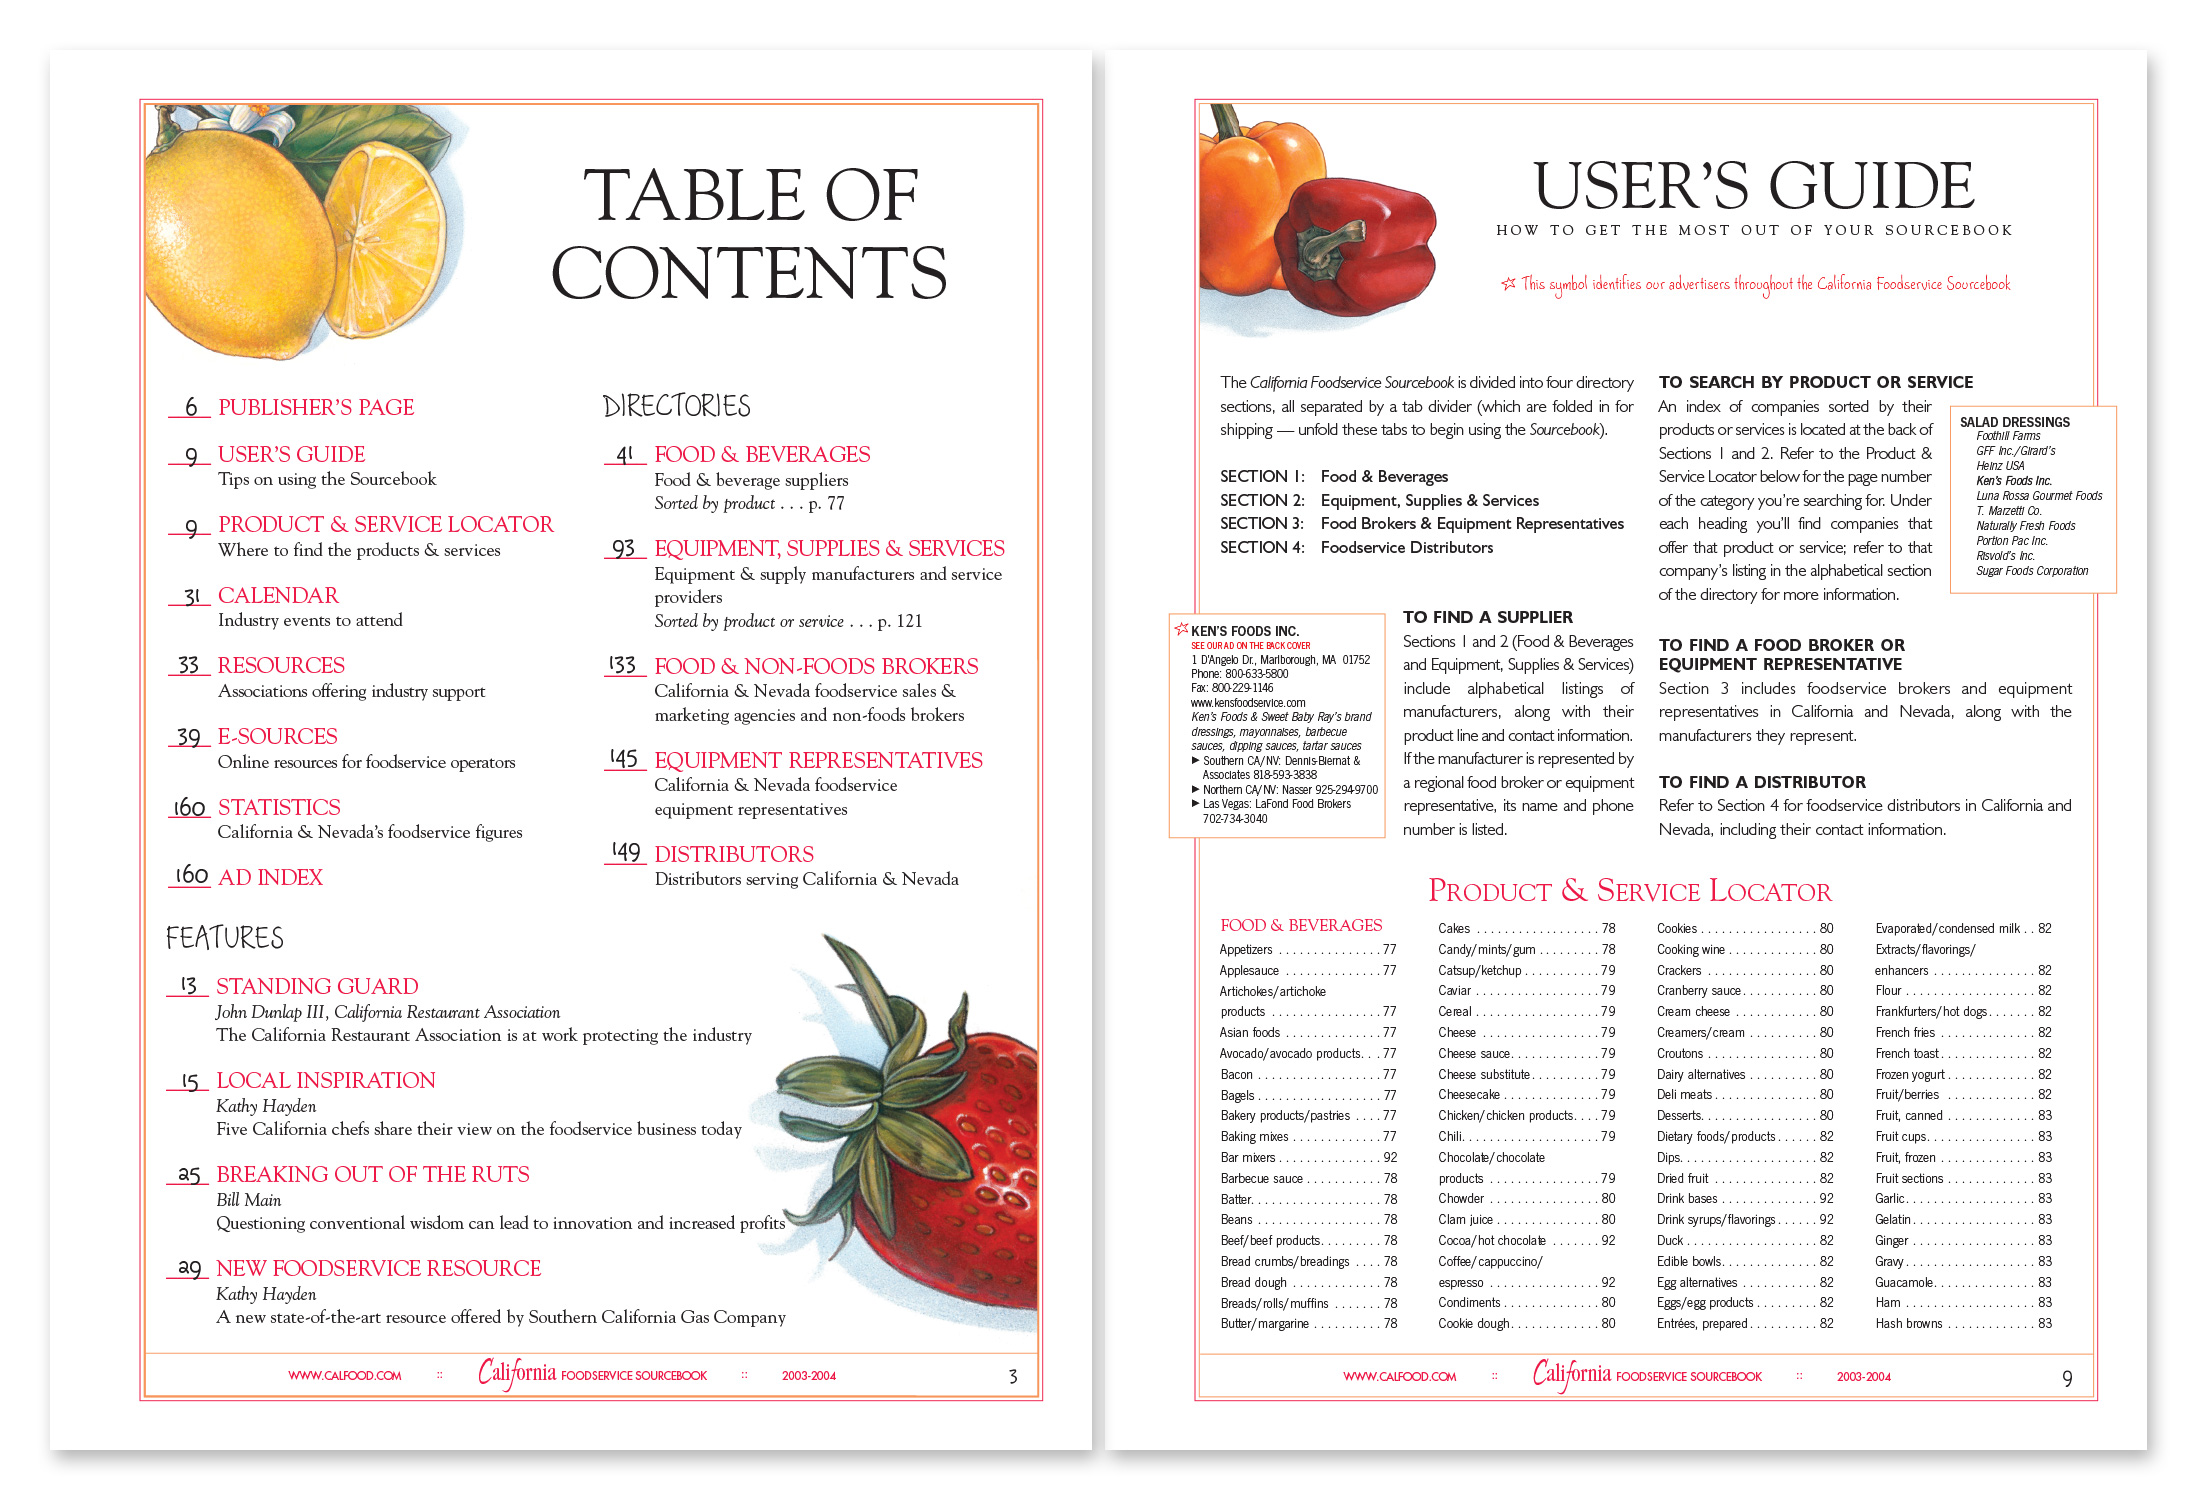 fruit_pages1.jpg